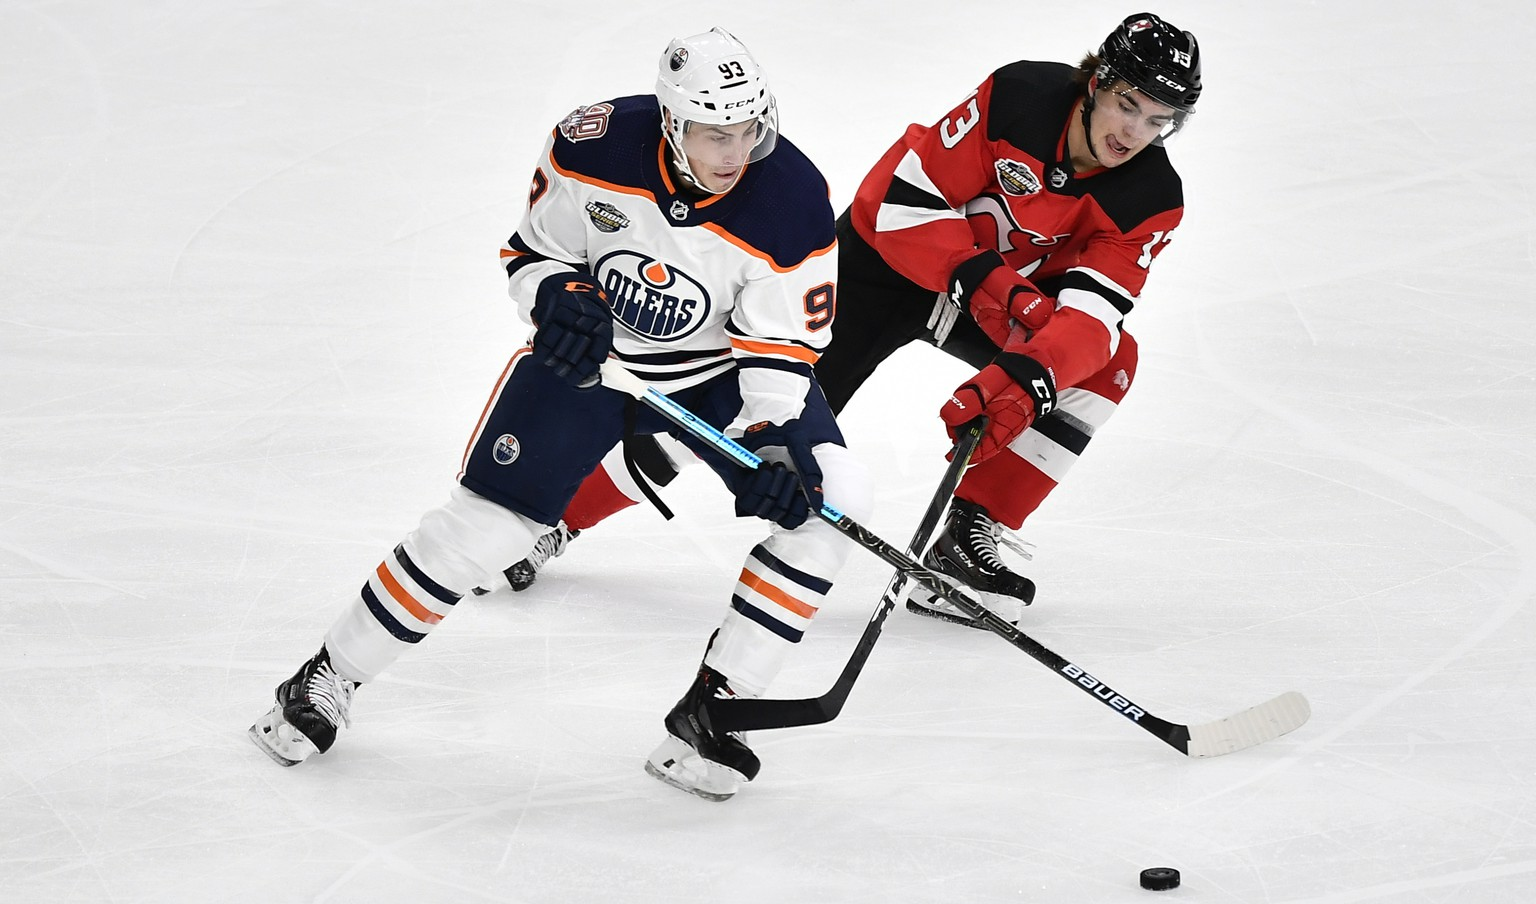 epa07074636 Edmonton Oilers Ryan Nugent-Hopkins (L) and New Jersey Devils Nico Hischier in action during the season-opening NHL Global Series icehockey match between Edmonton Oilers and New Jersey Devils at Scandinavium in Gothenburg, Sweden, 06 October 2018,  EPA/Bjorn Larsson Rosvall/TT EDITORIAL USE ONLY SWEDEN OUT  EDITORIAL USE ONLY